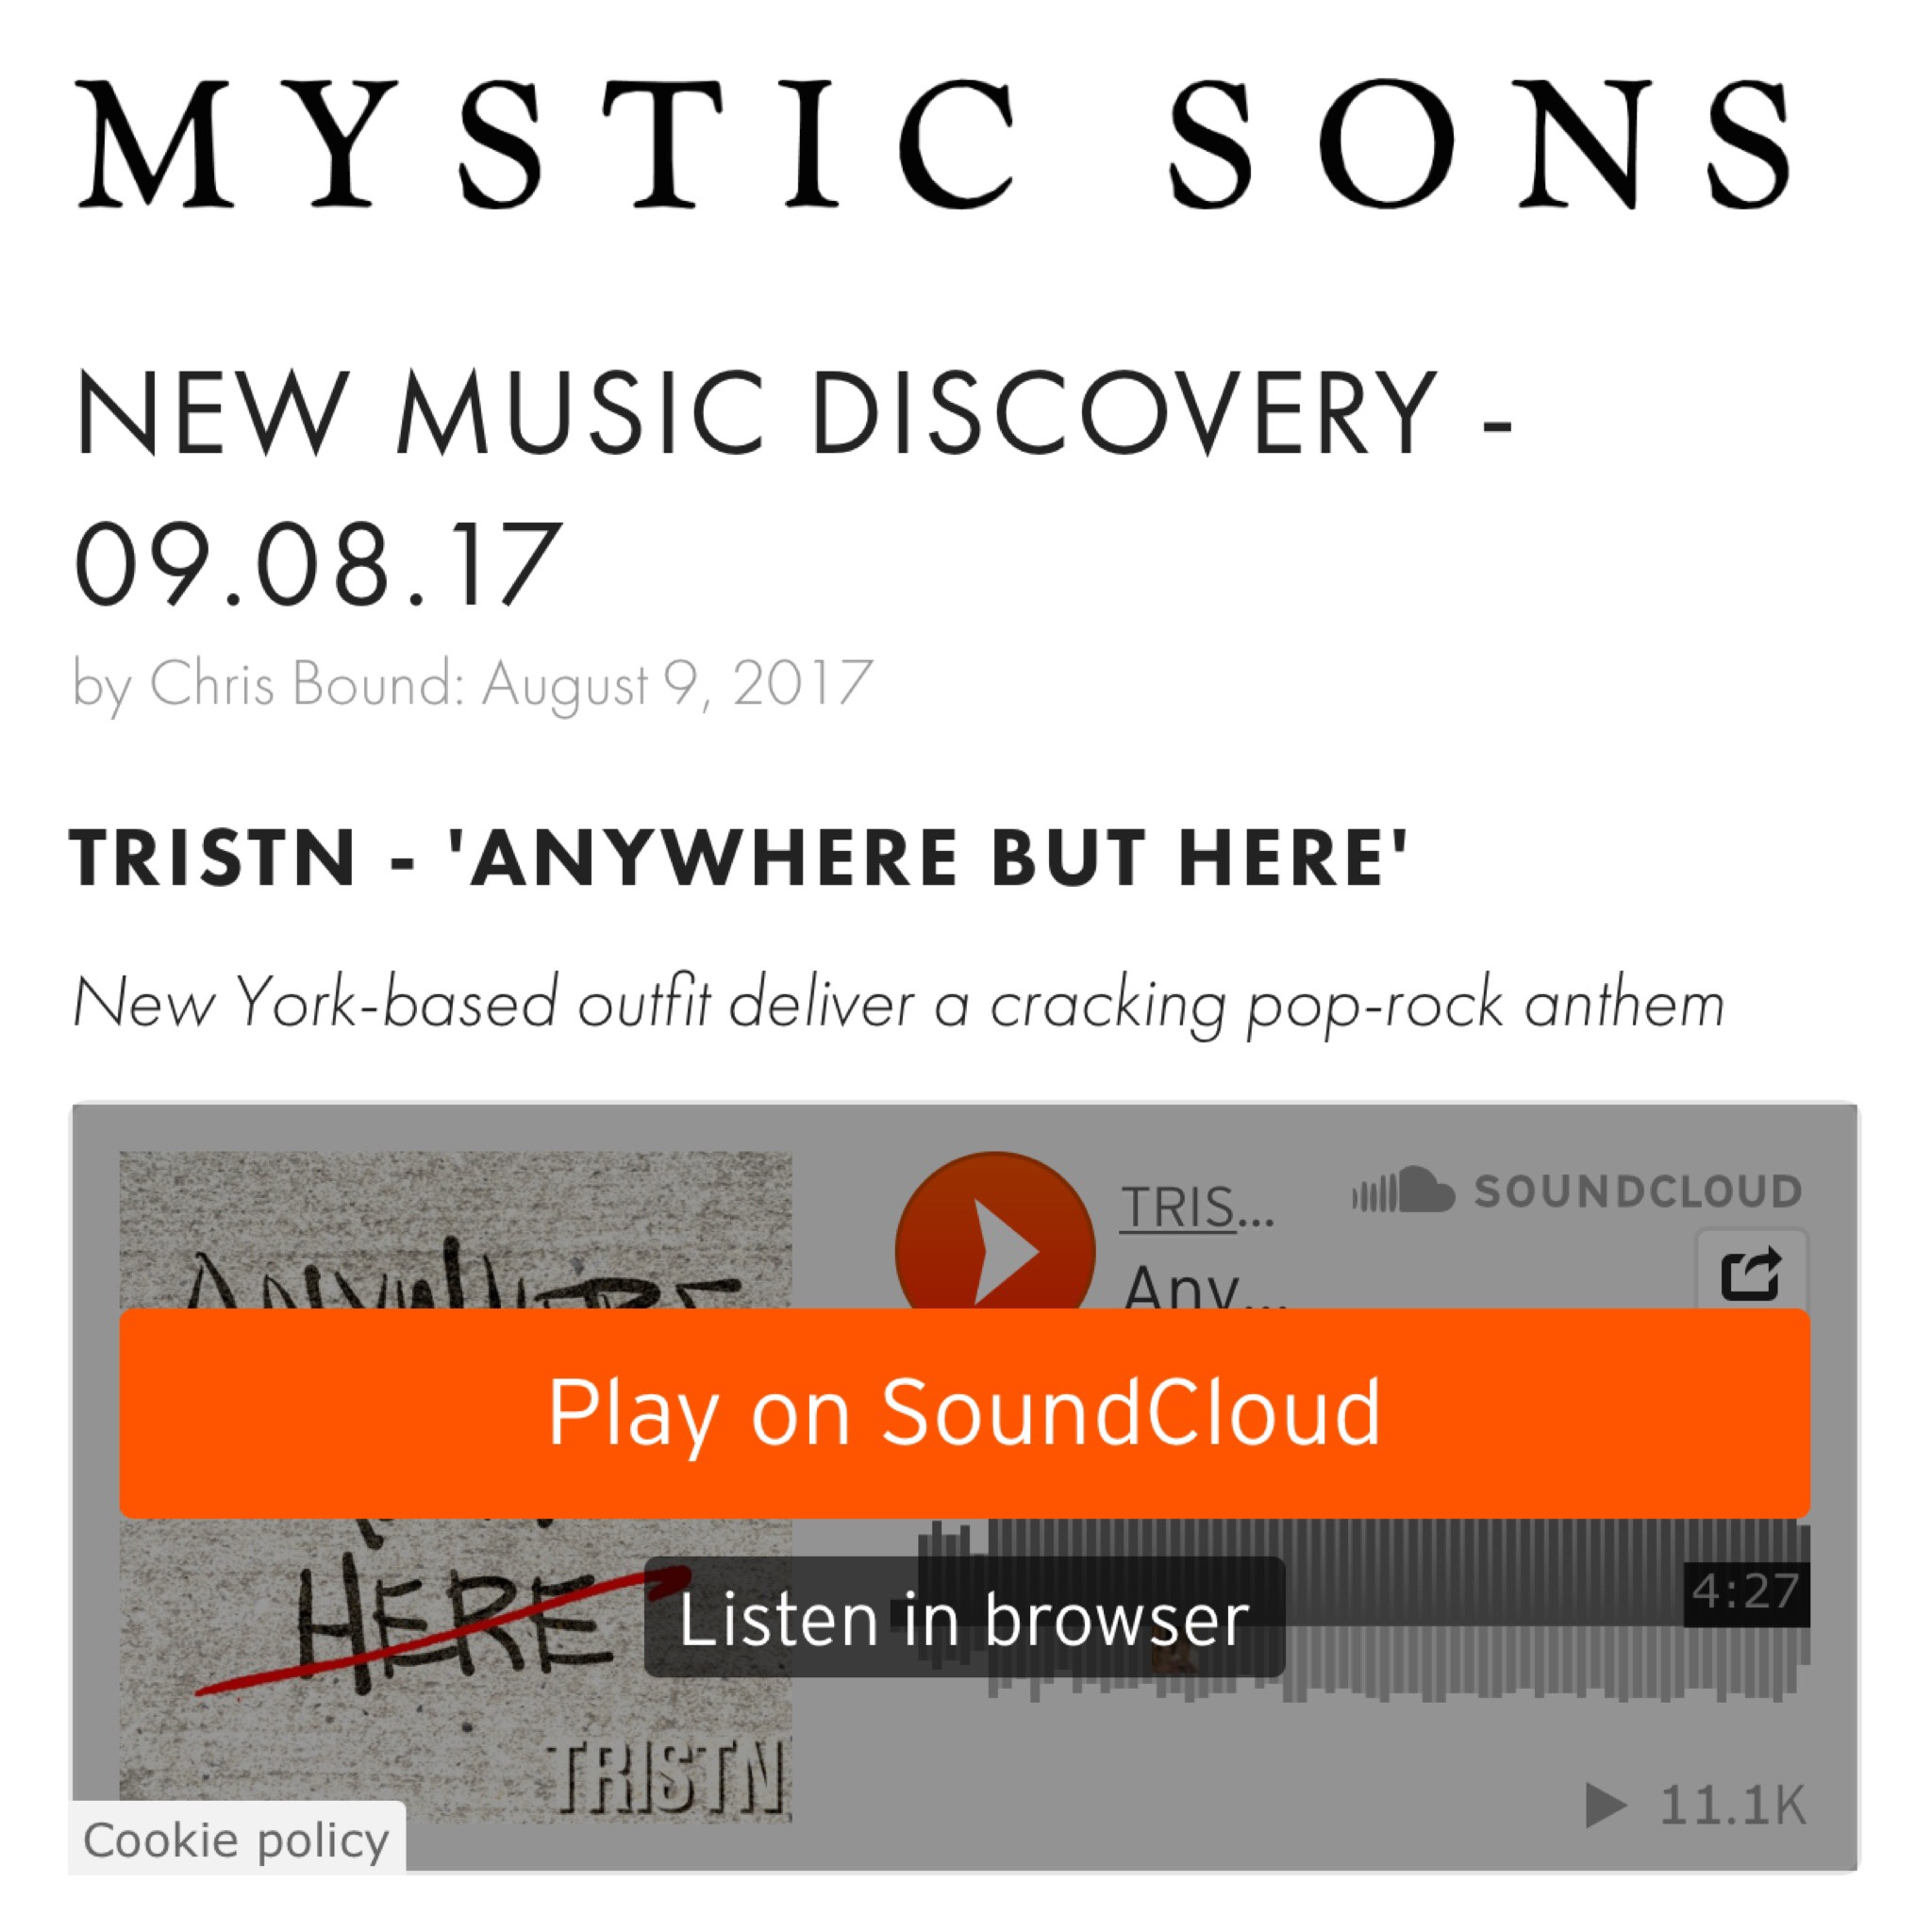 MYSTIC SONS NEW MUSIC DISCOVERY - NEW YORK- BASED OUTFIT DELIVERS A CRARCKING POP-ROCK ANTHEM